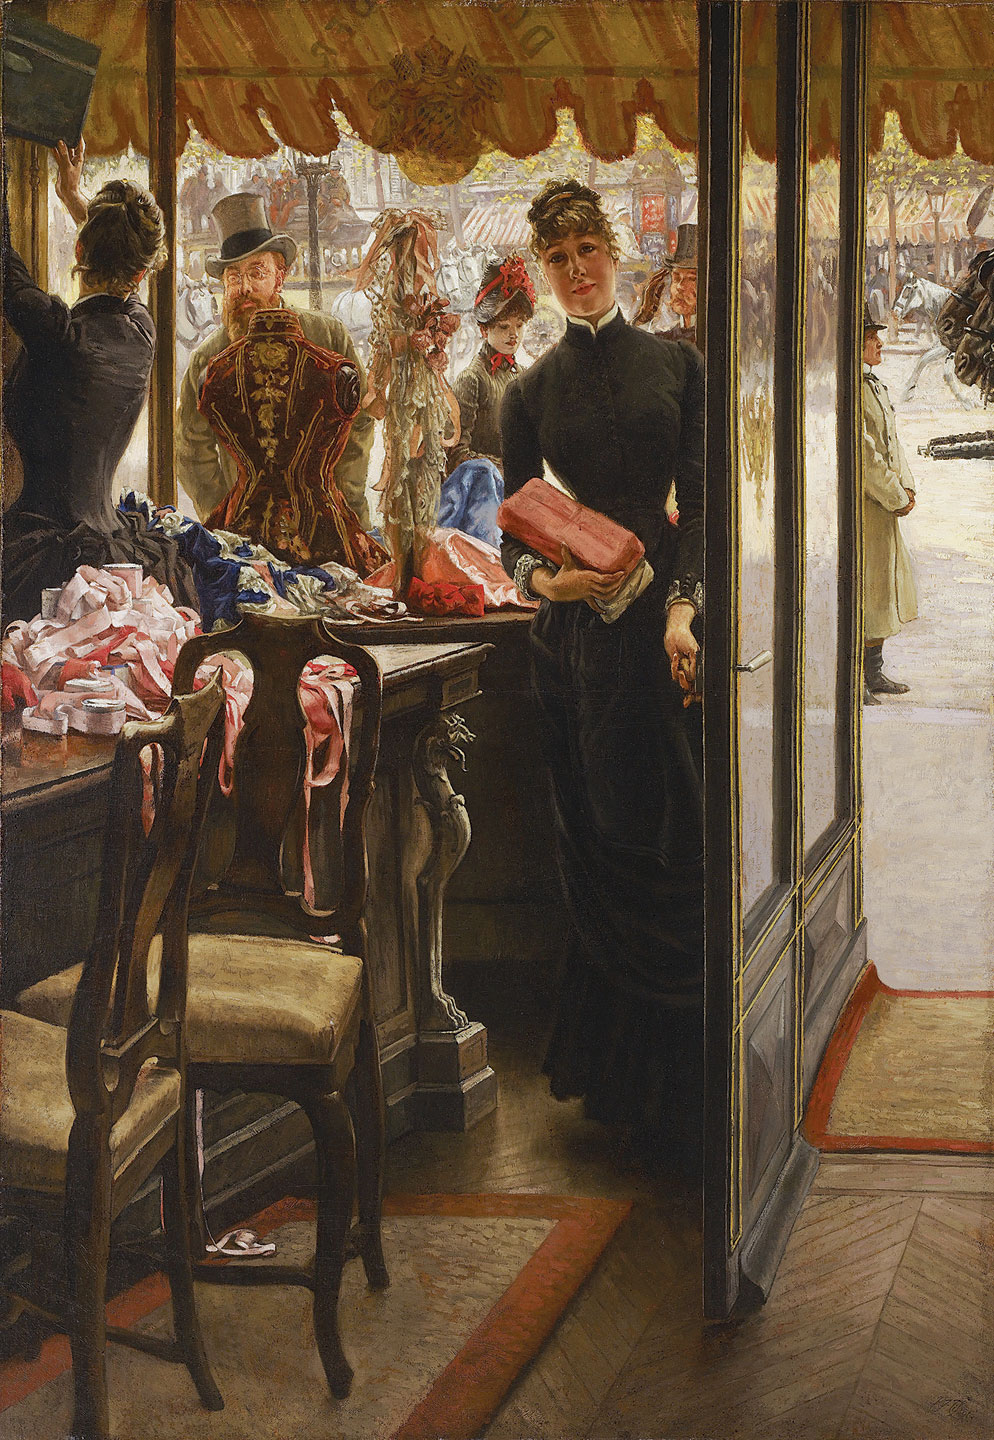 THE SHOP GIRL by James Tissot, oil on canvas, 146.05 x 101.6 centimeters, 1883-1885.  Courtesy of Art Gallery of Ontario, Toronto.